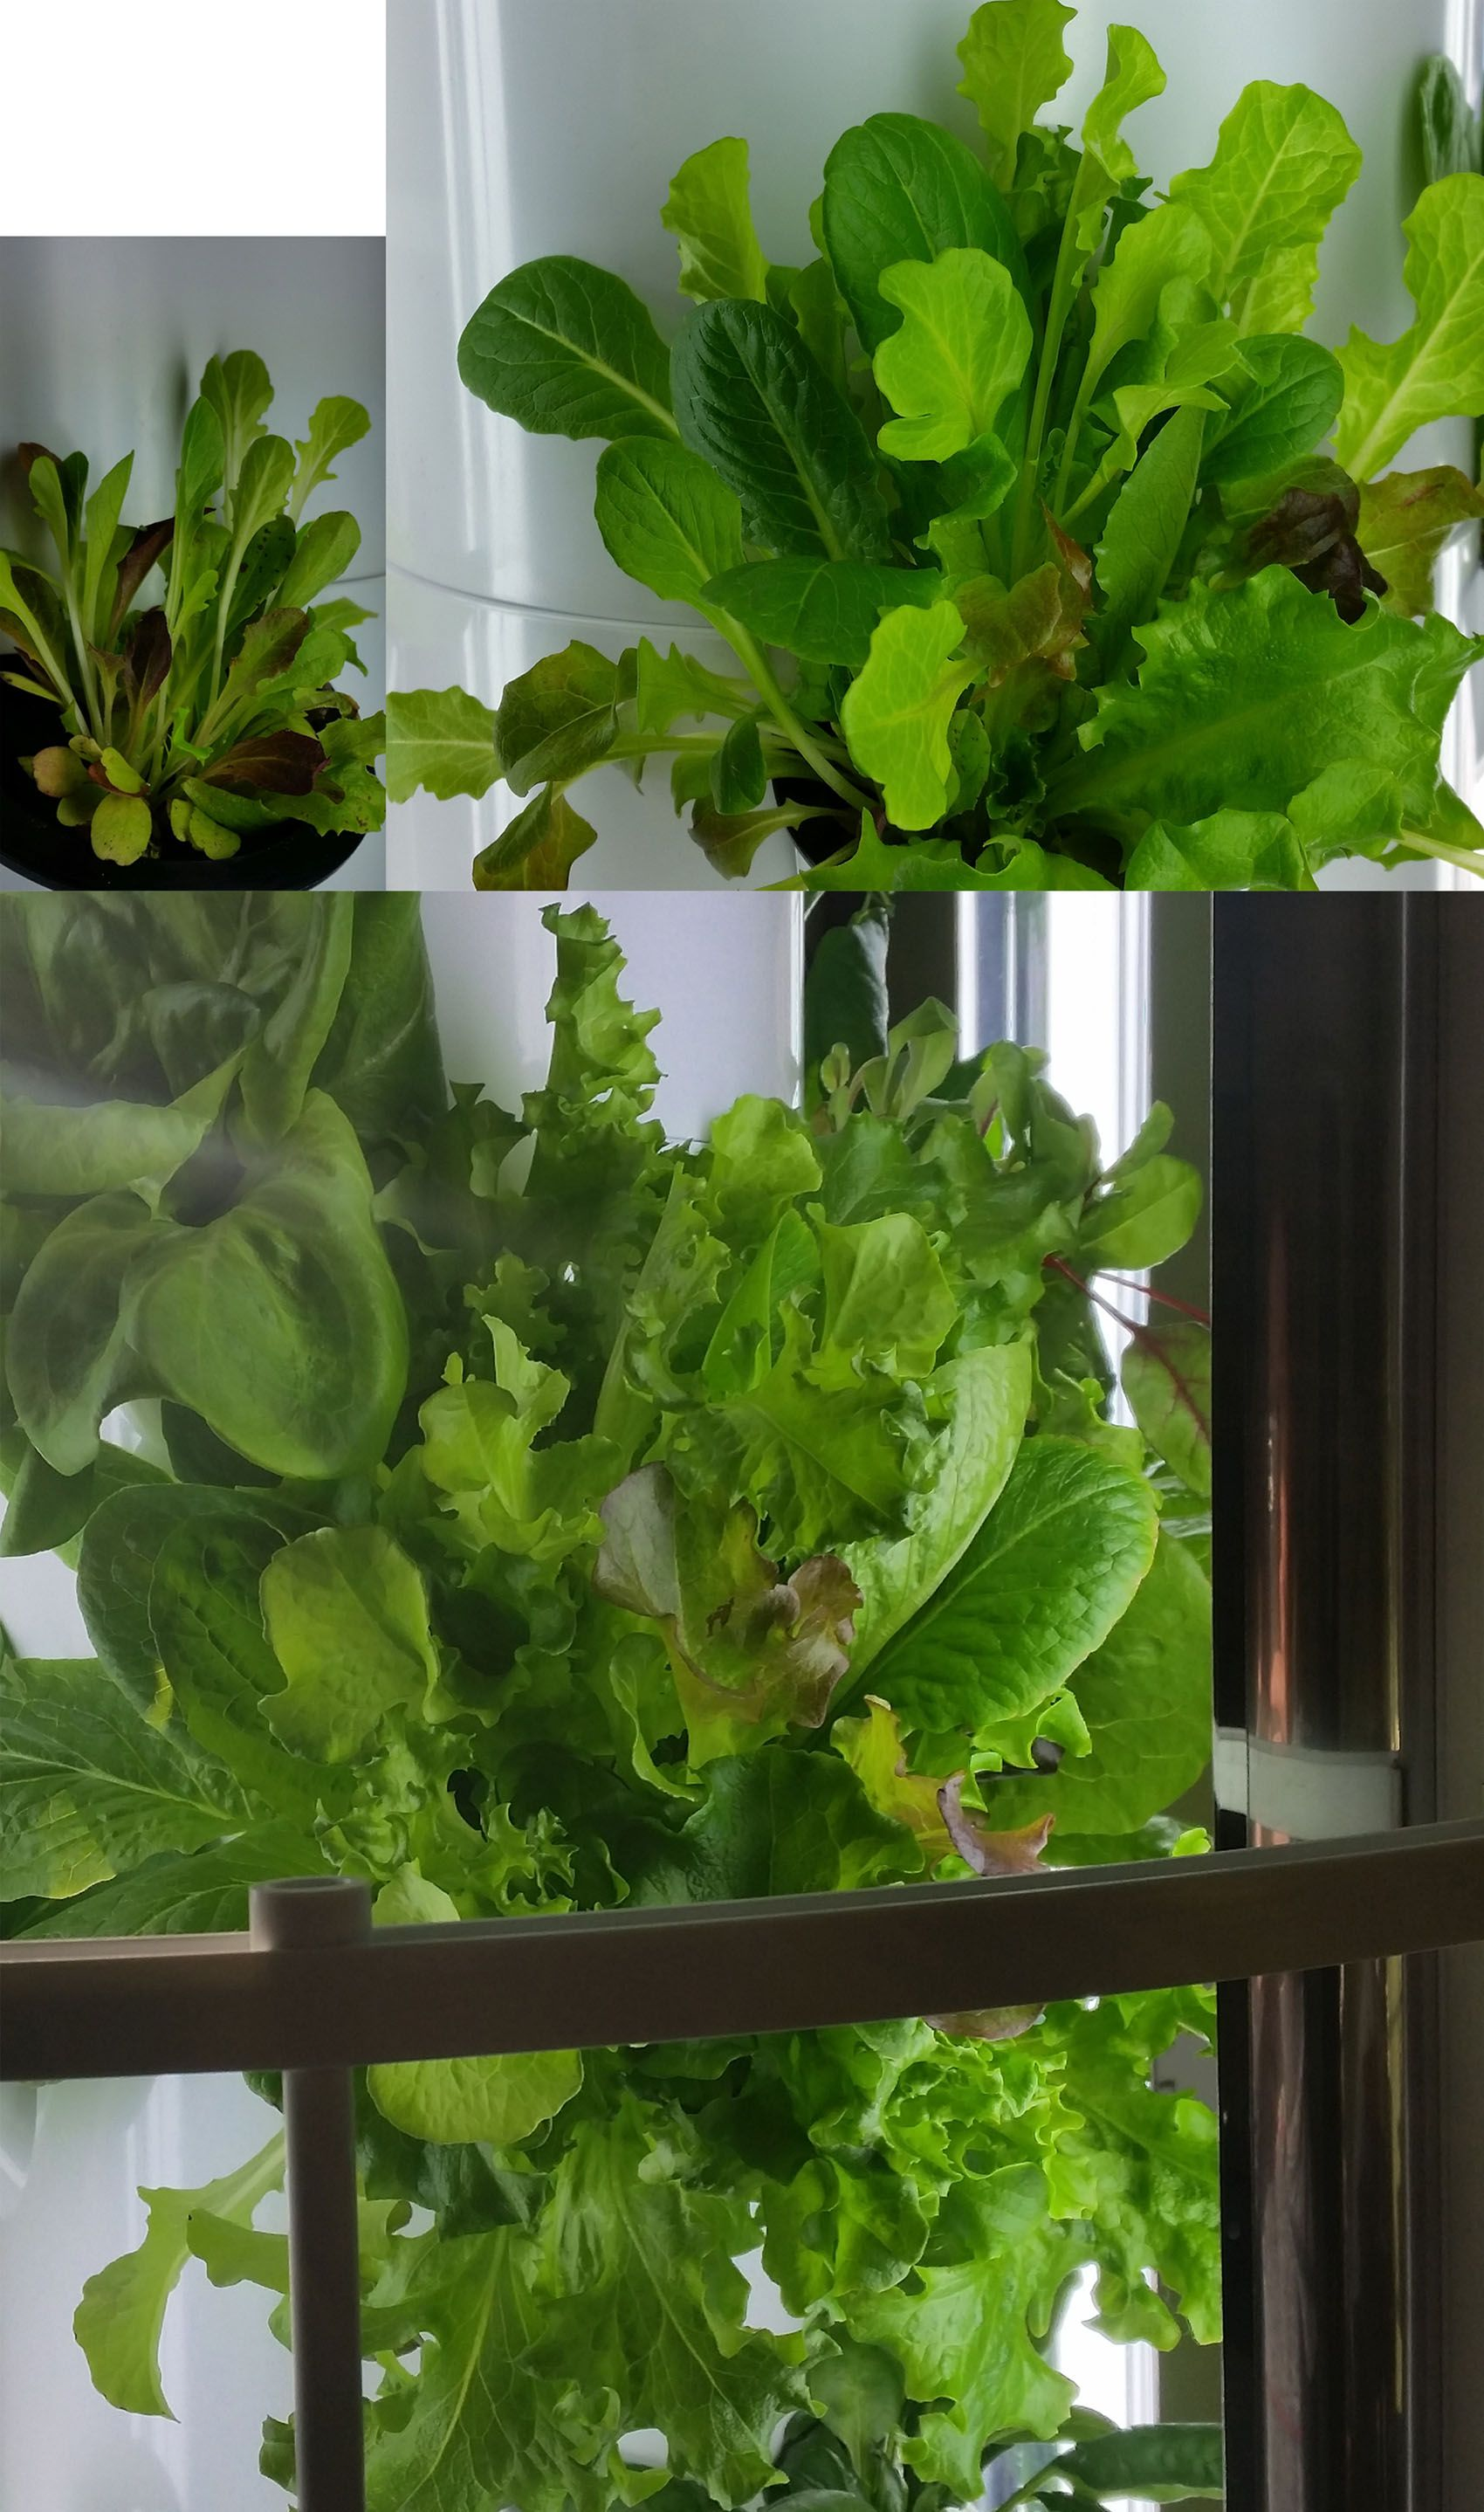 Tower Garden Spring Mix Lettuce Leafy Greens a